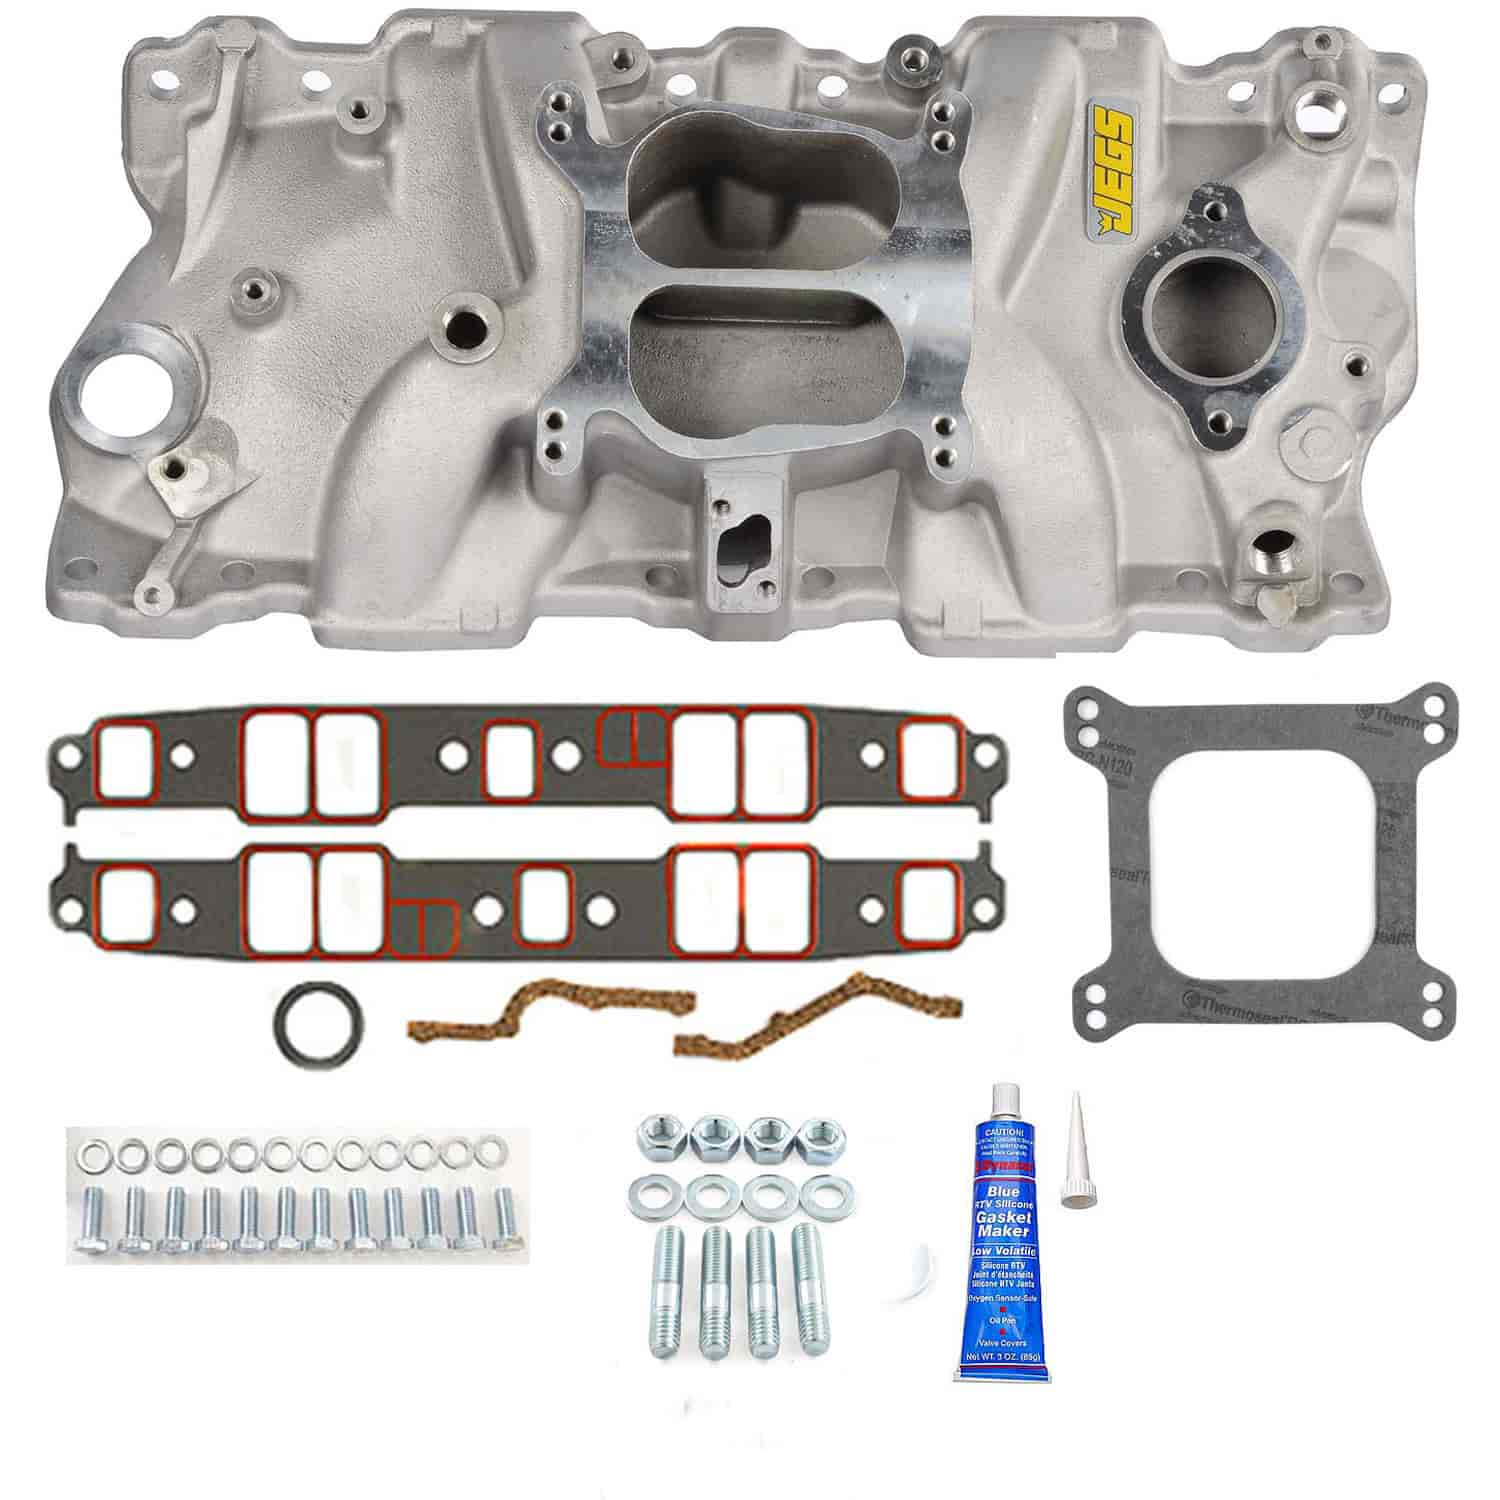 JEGS Performance Products 513001K - JEGS Champion Series 331 Performance Dual Plane Aluminum Intake Manifolds